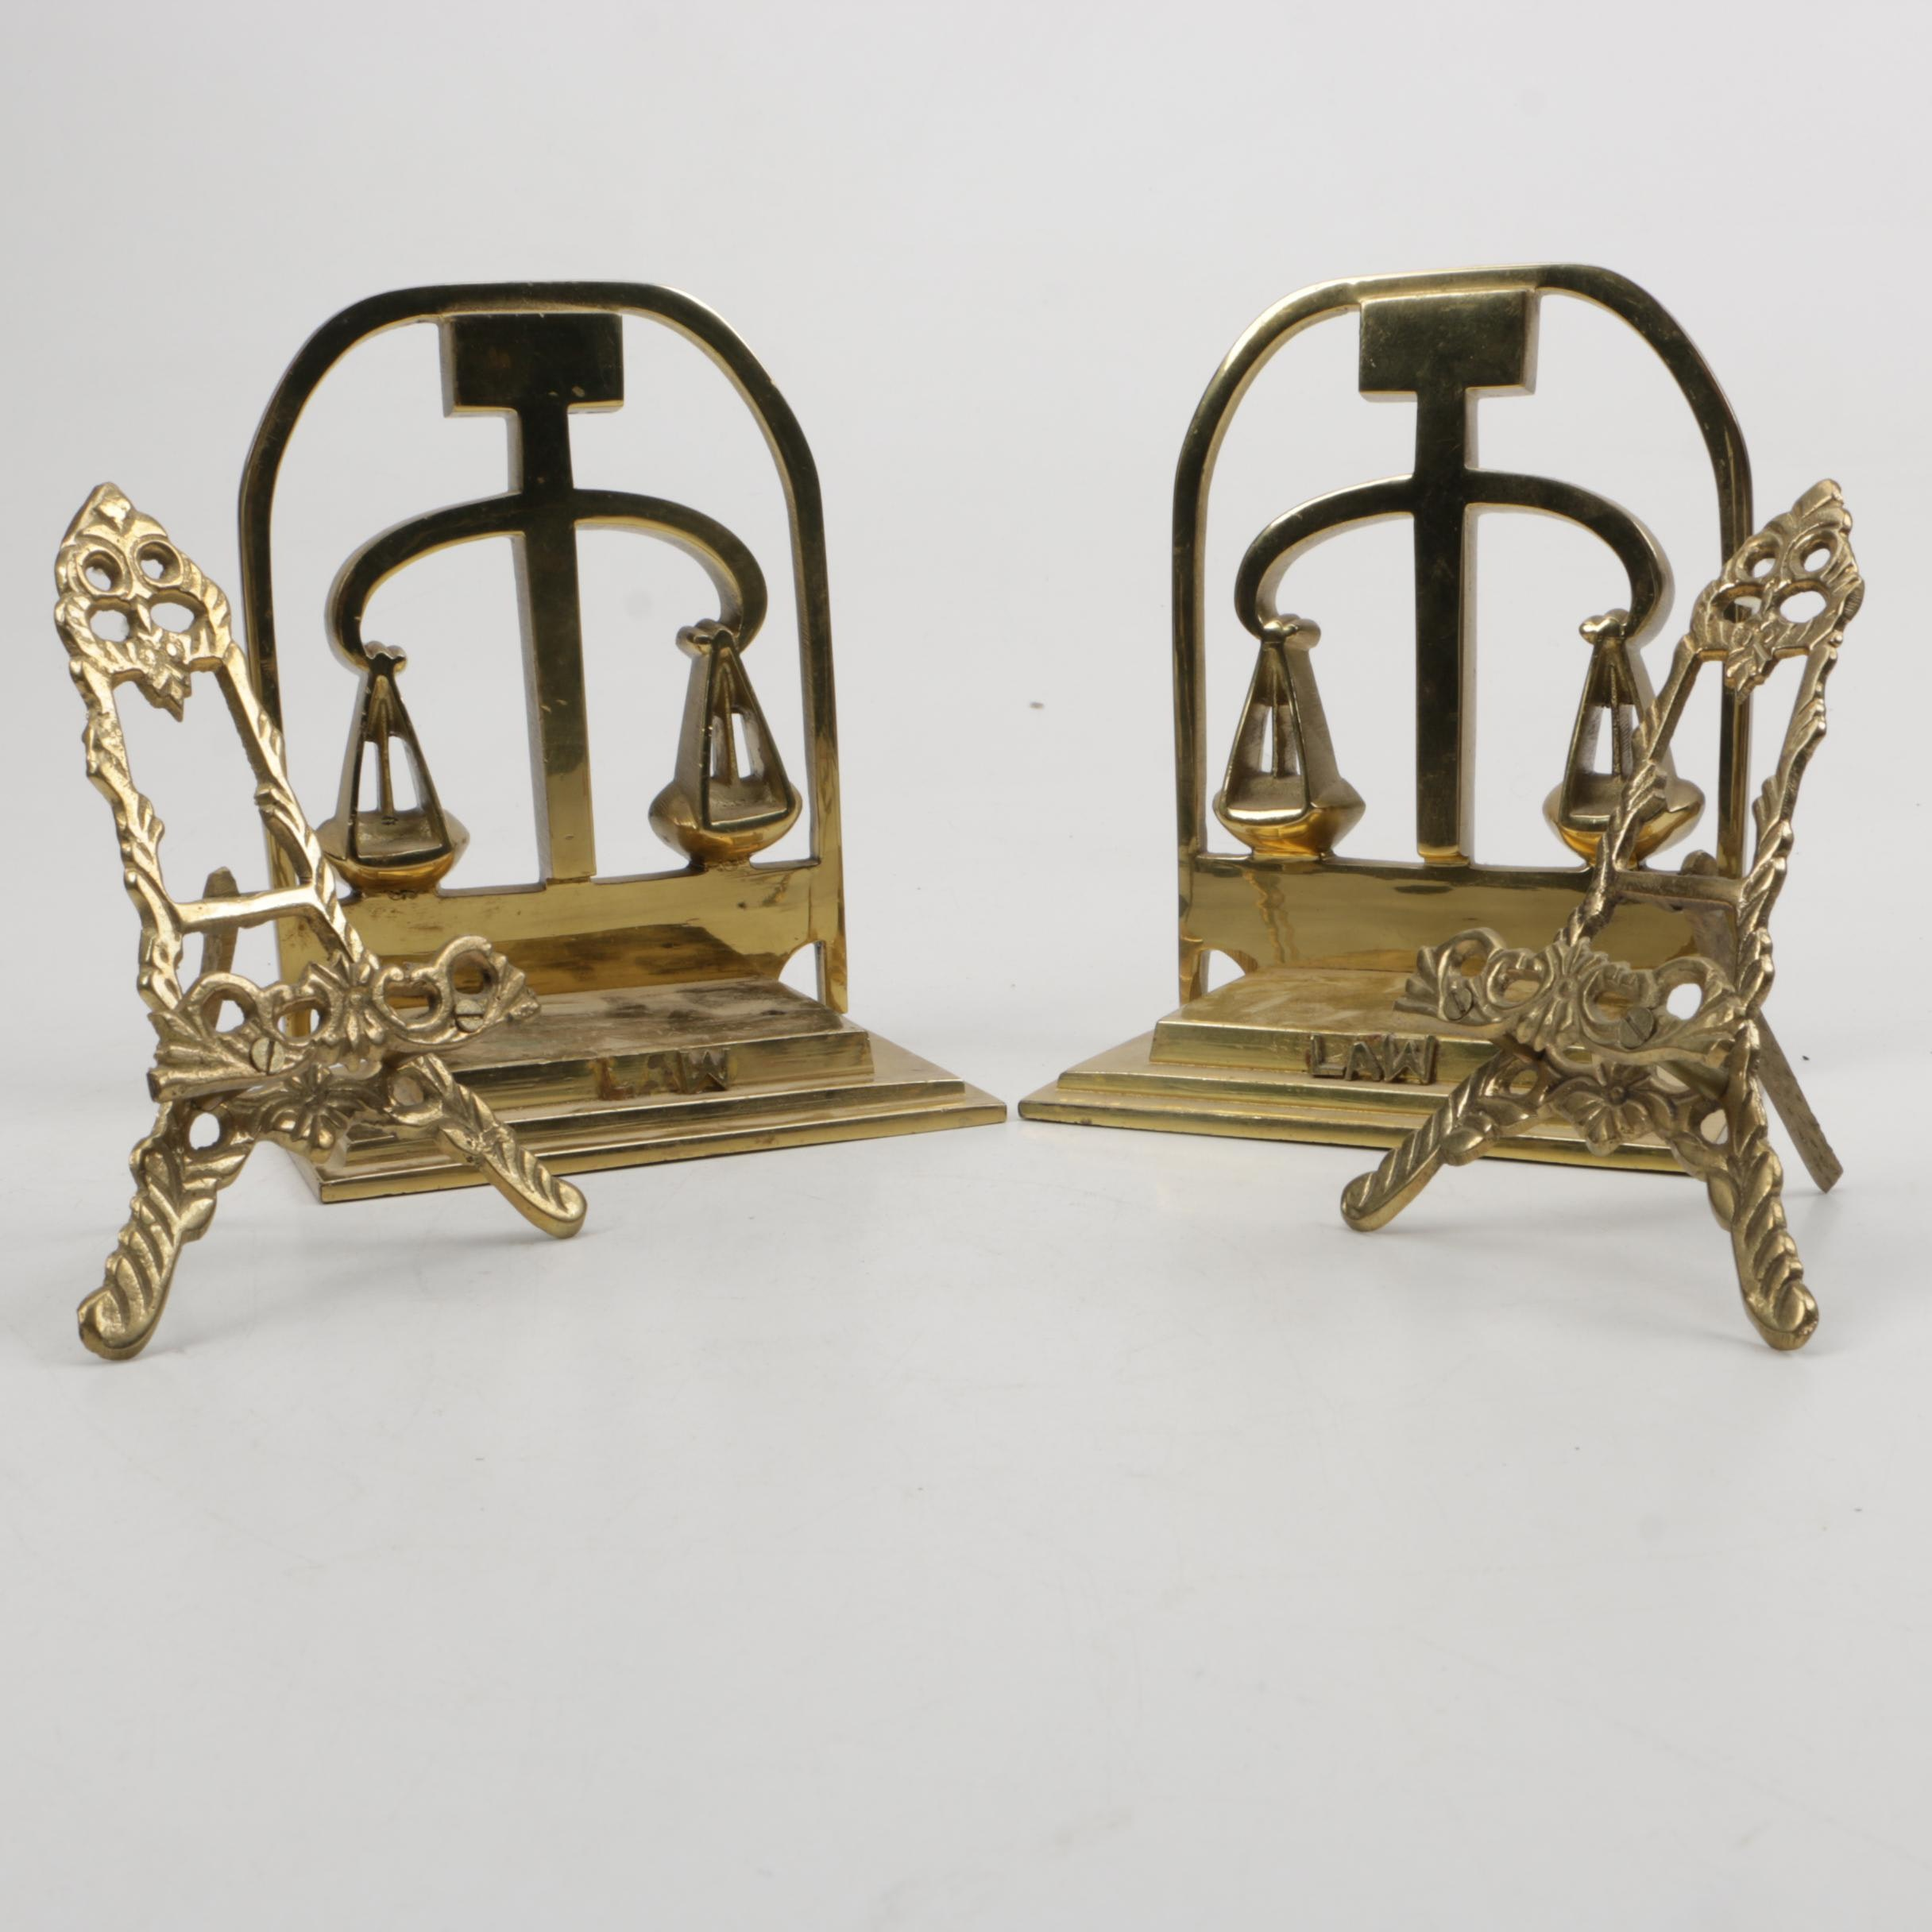 Brass Book Ends with a Pair of Table Easels